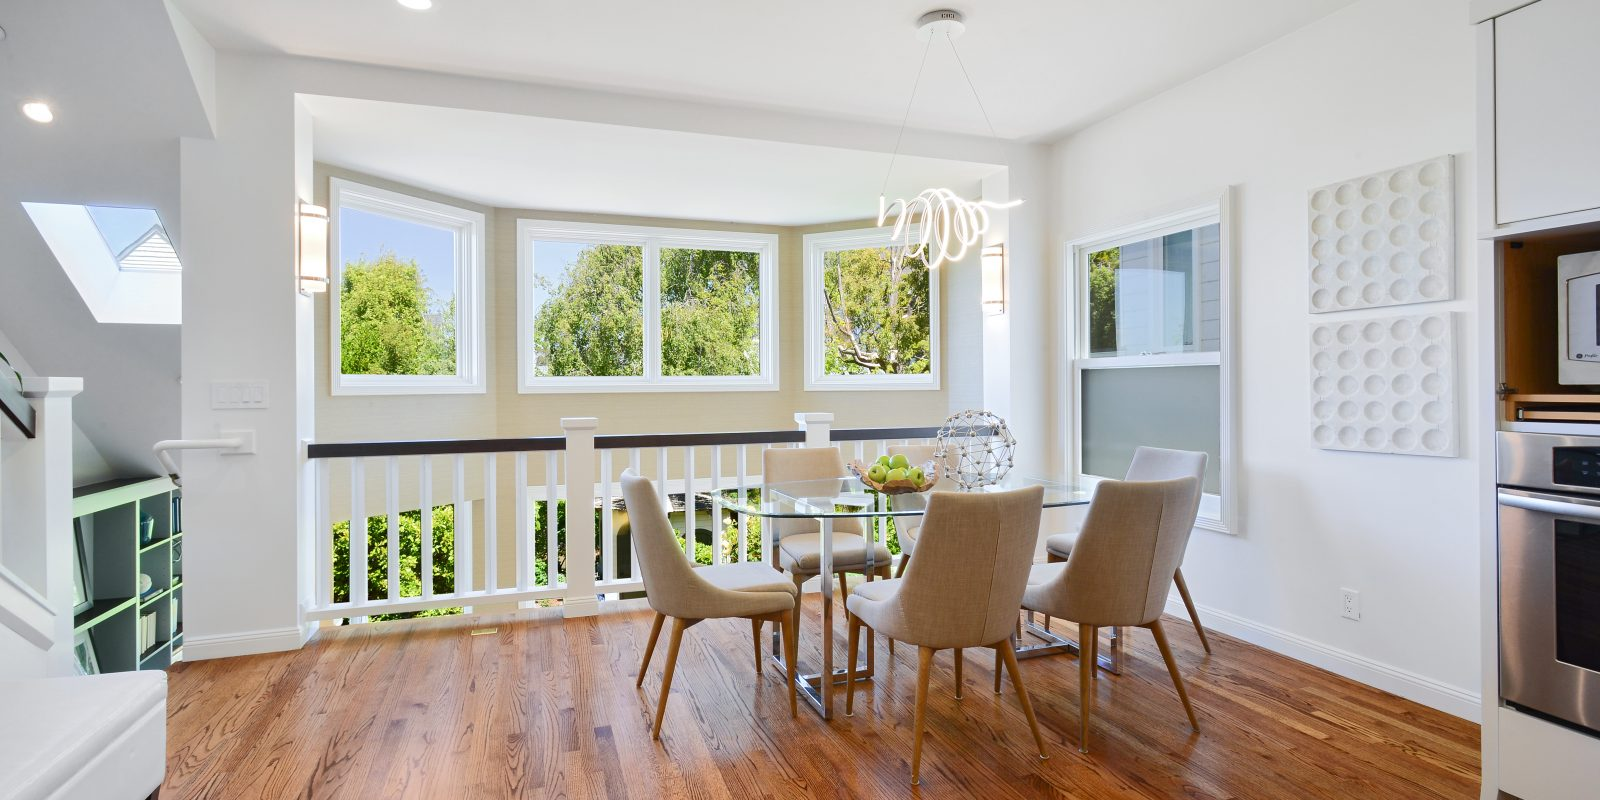 3358-washington-street-presidio-heights-san-francisco-home-for-sale-177284